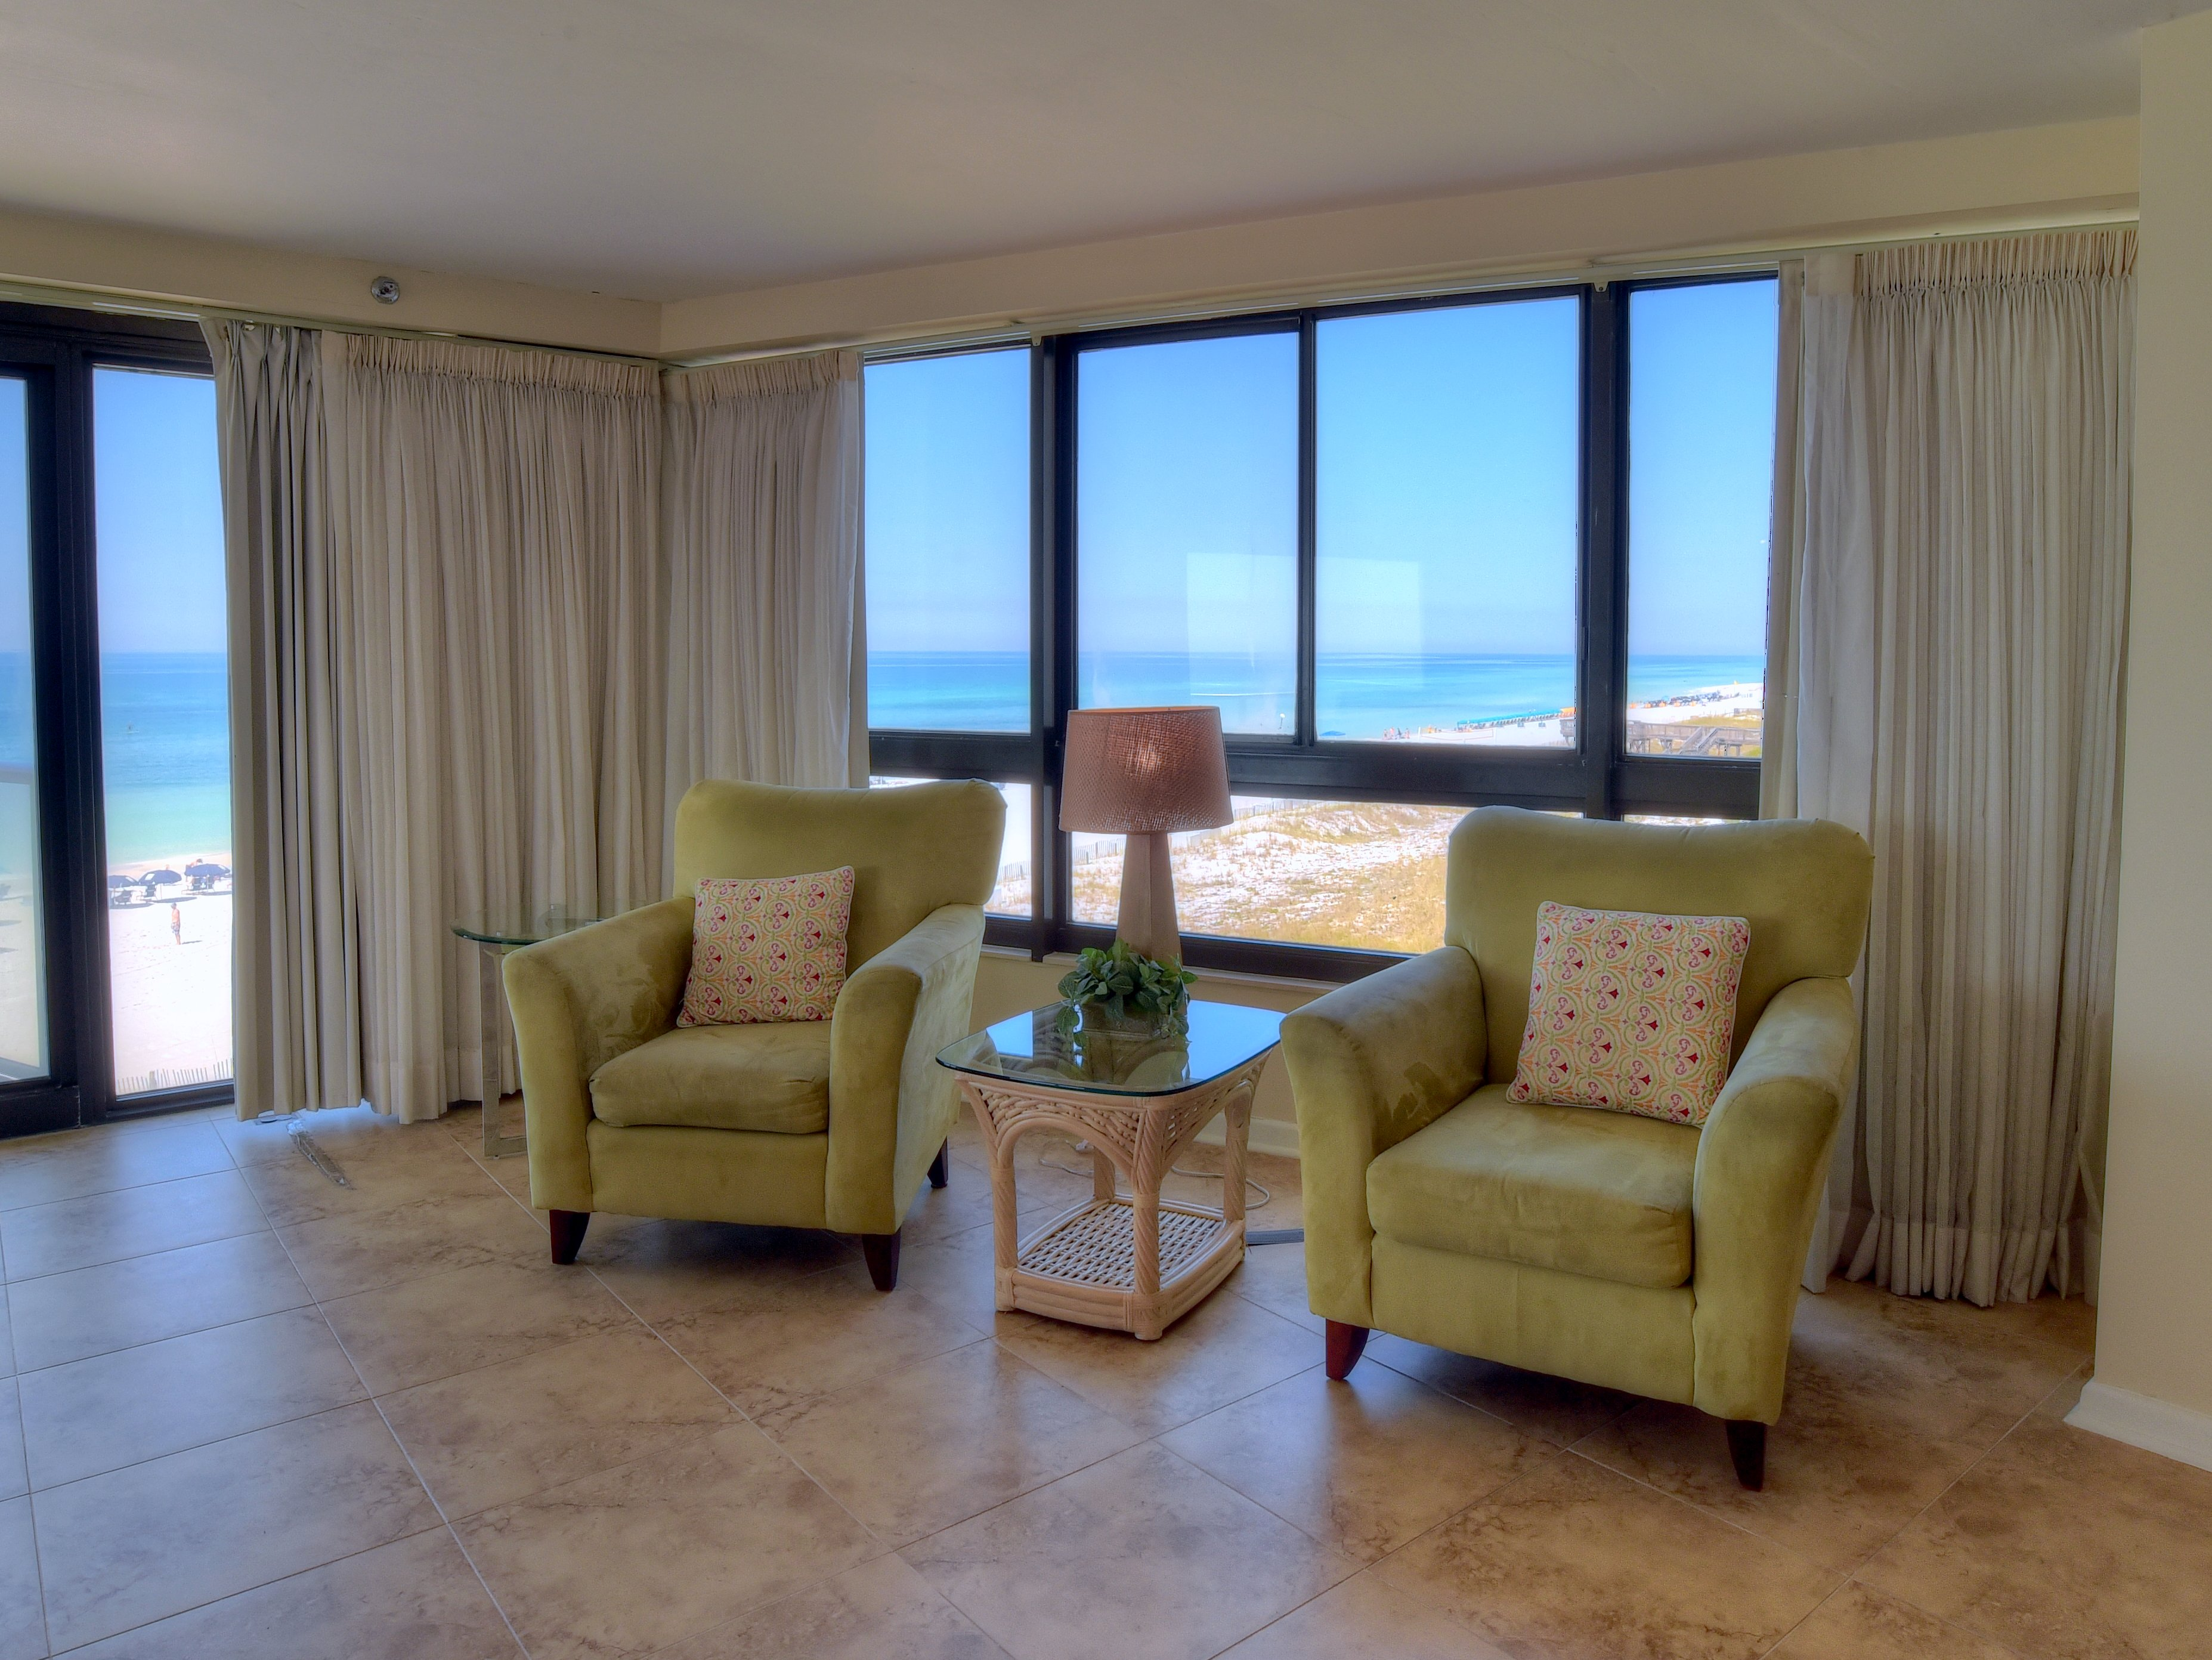 4243 Beachside Two Condo rental in Beachside Towers at Sandestin in Destin Florida - #6